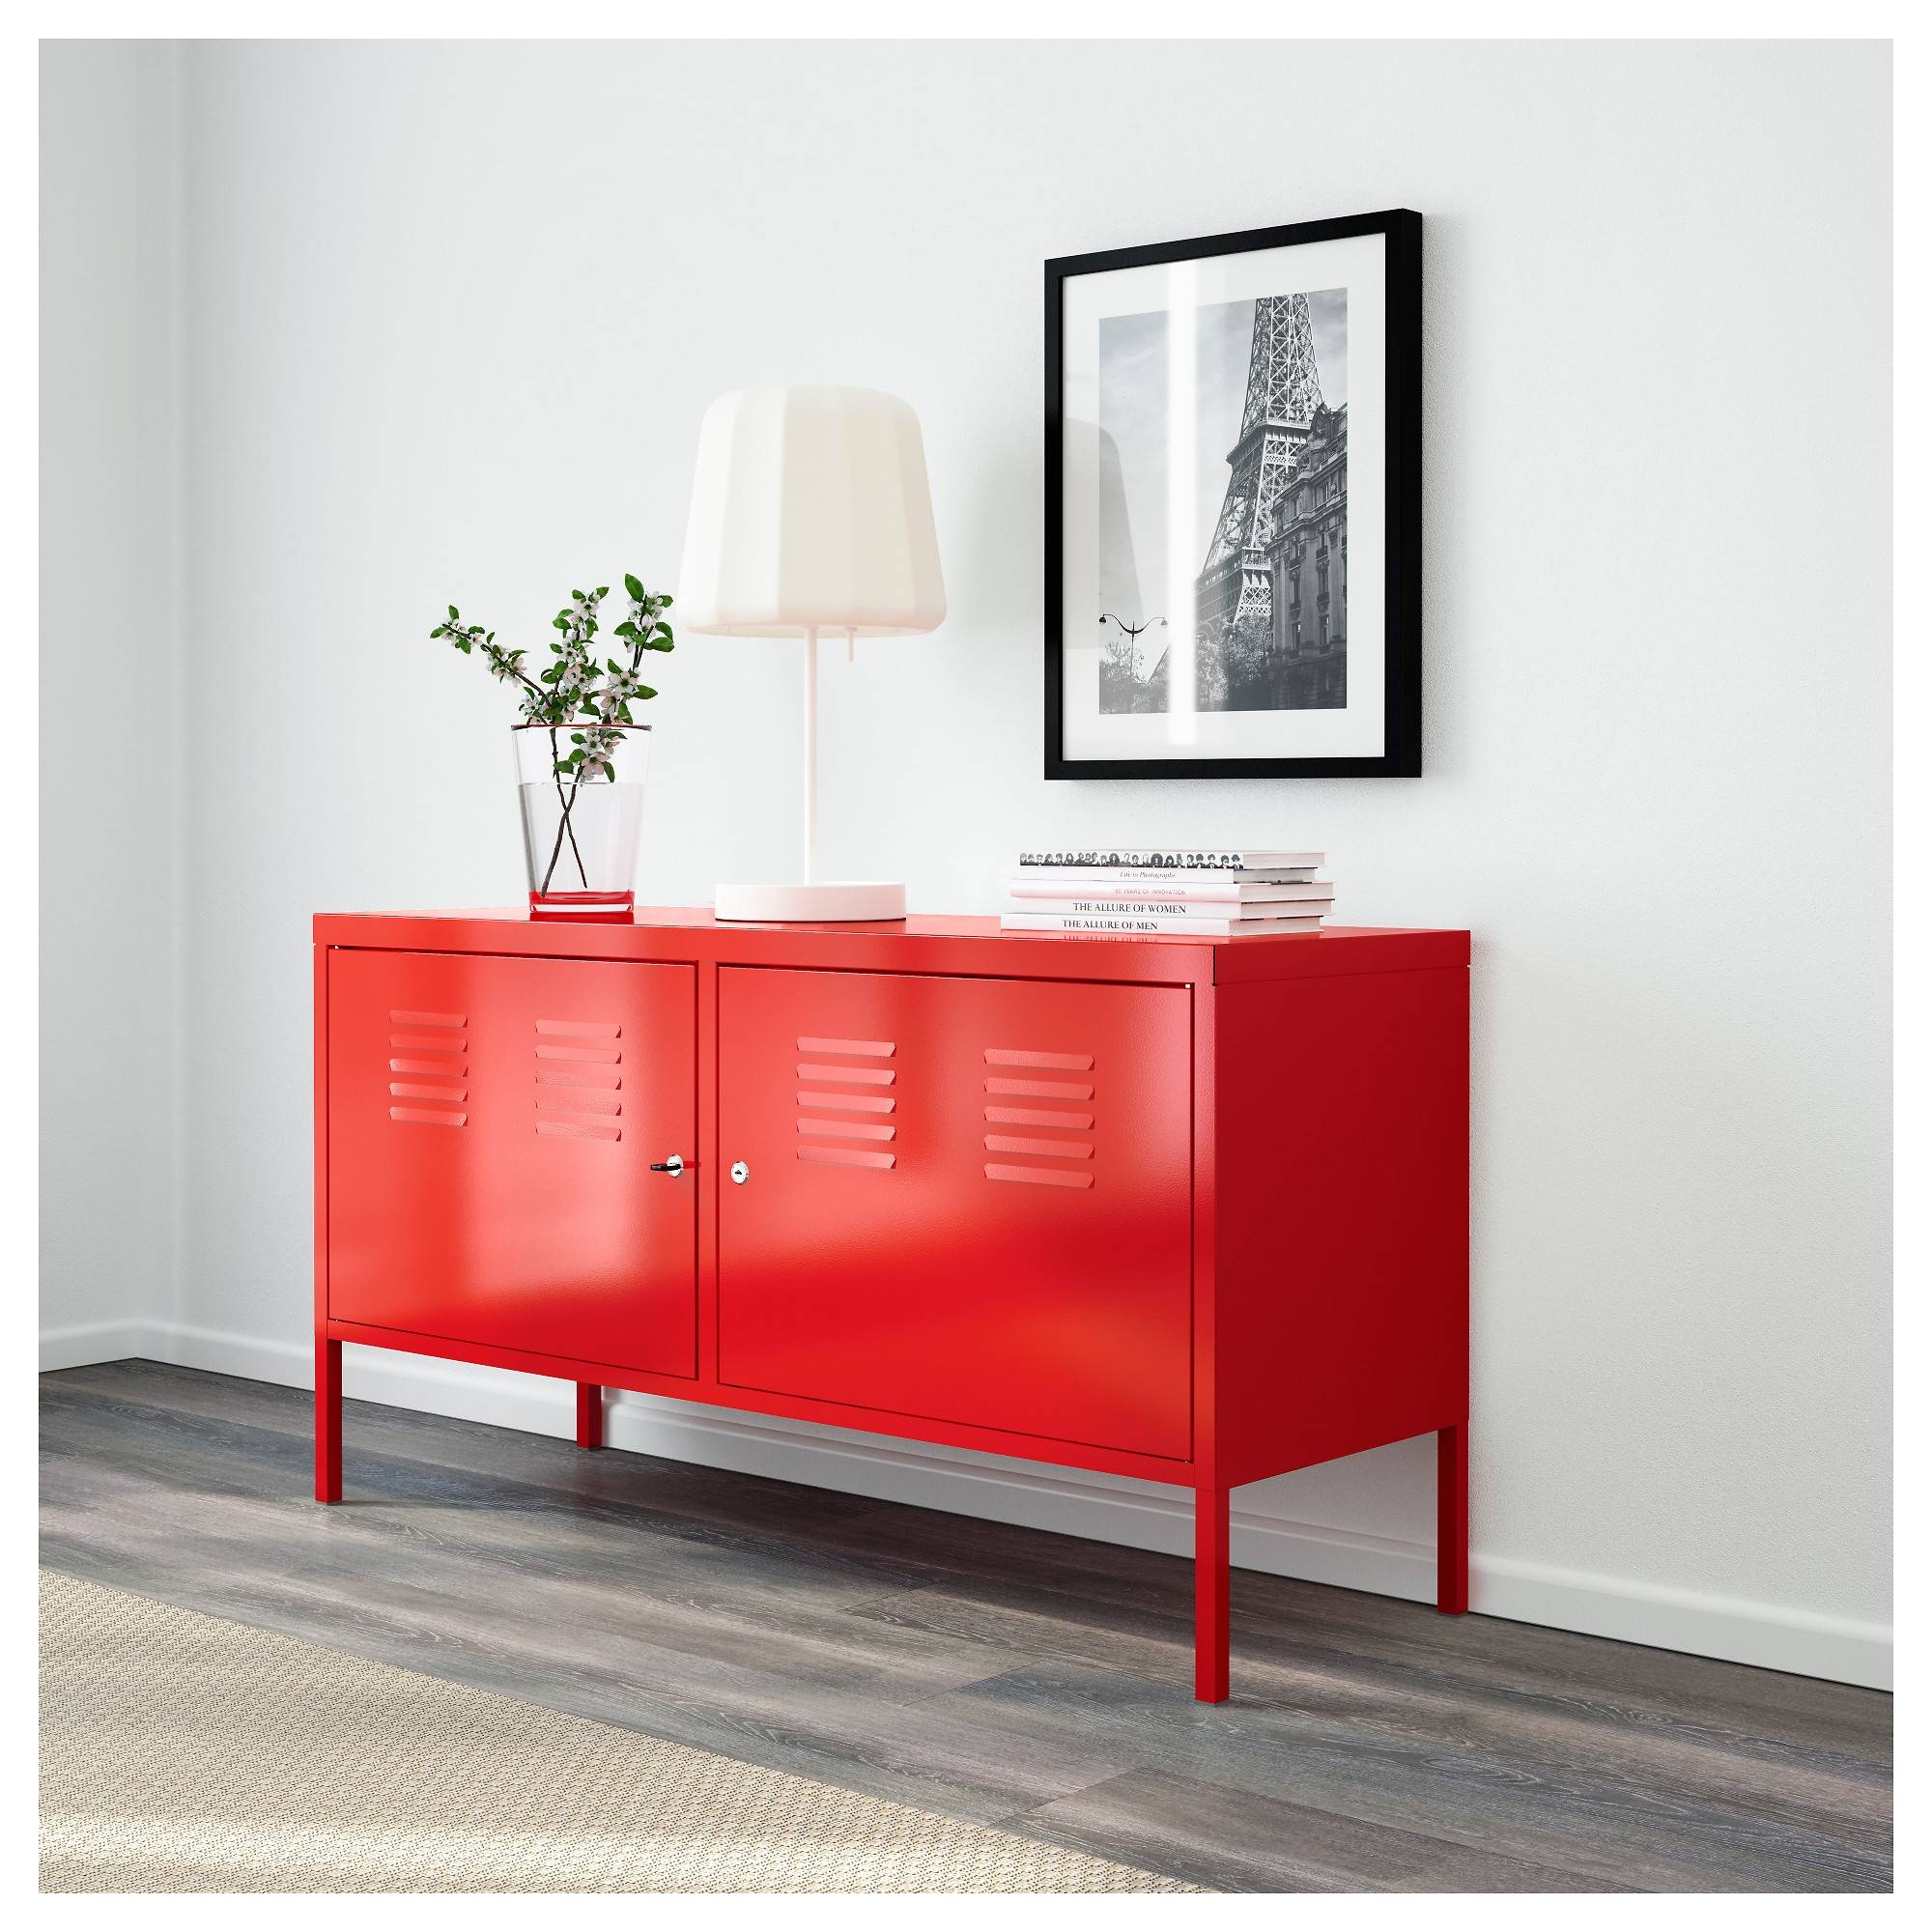 Sideboards. Amazing Red Credenza Cabinet: Red-Credenza-Cabinet-Red inside Red Sideboards (Image 22 of 30)